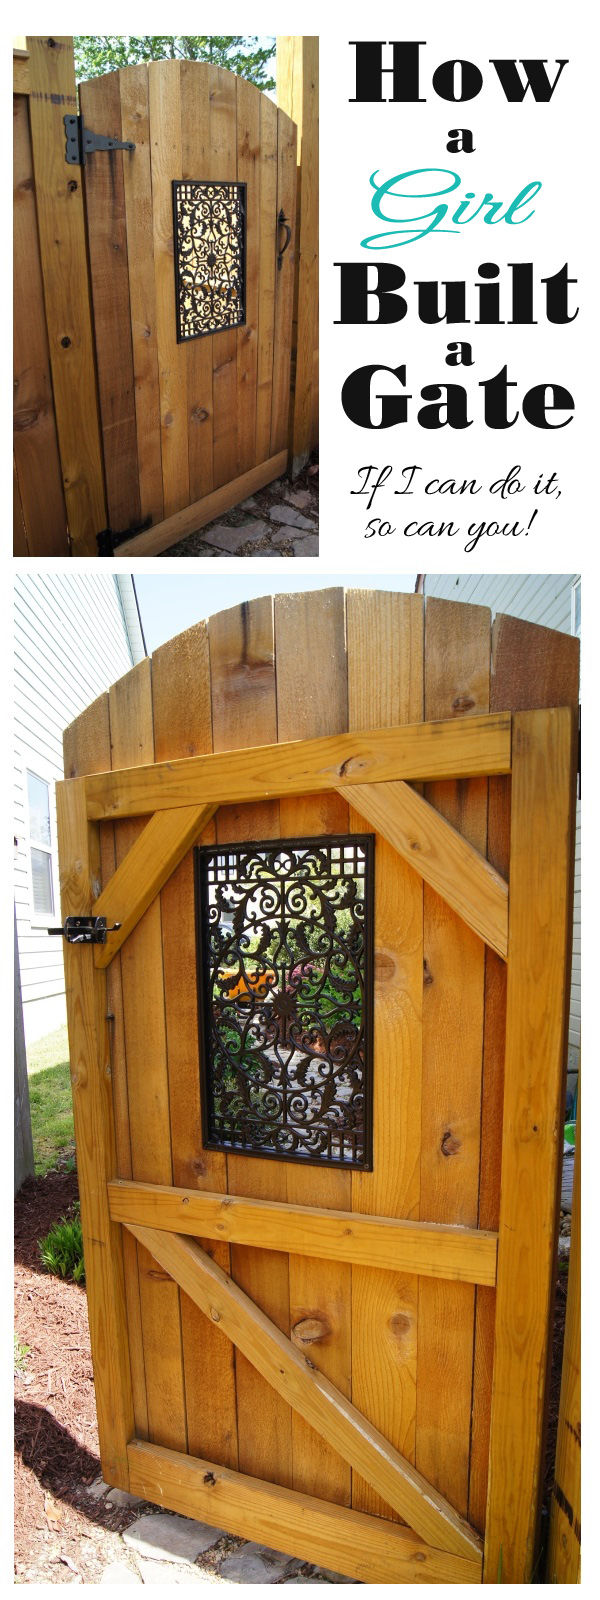 Build a Side Gate with a Decorative Window.